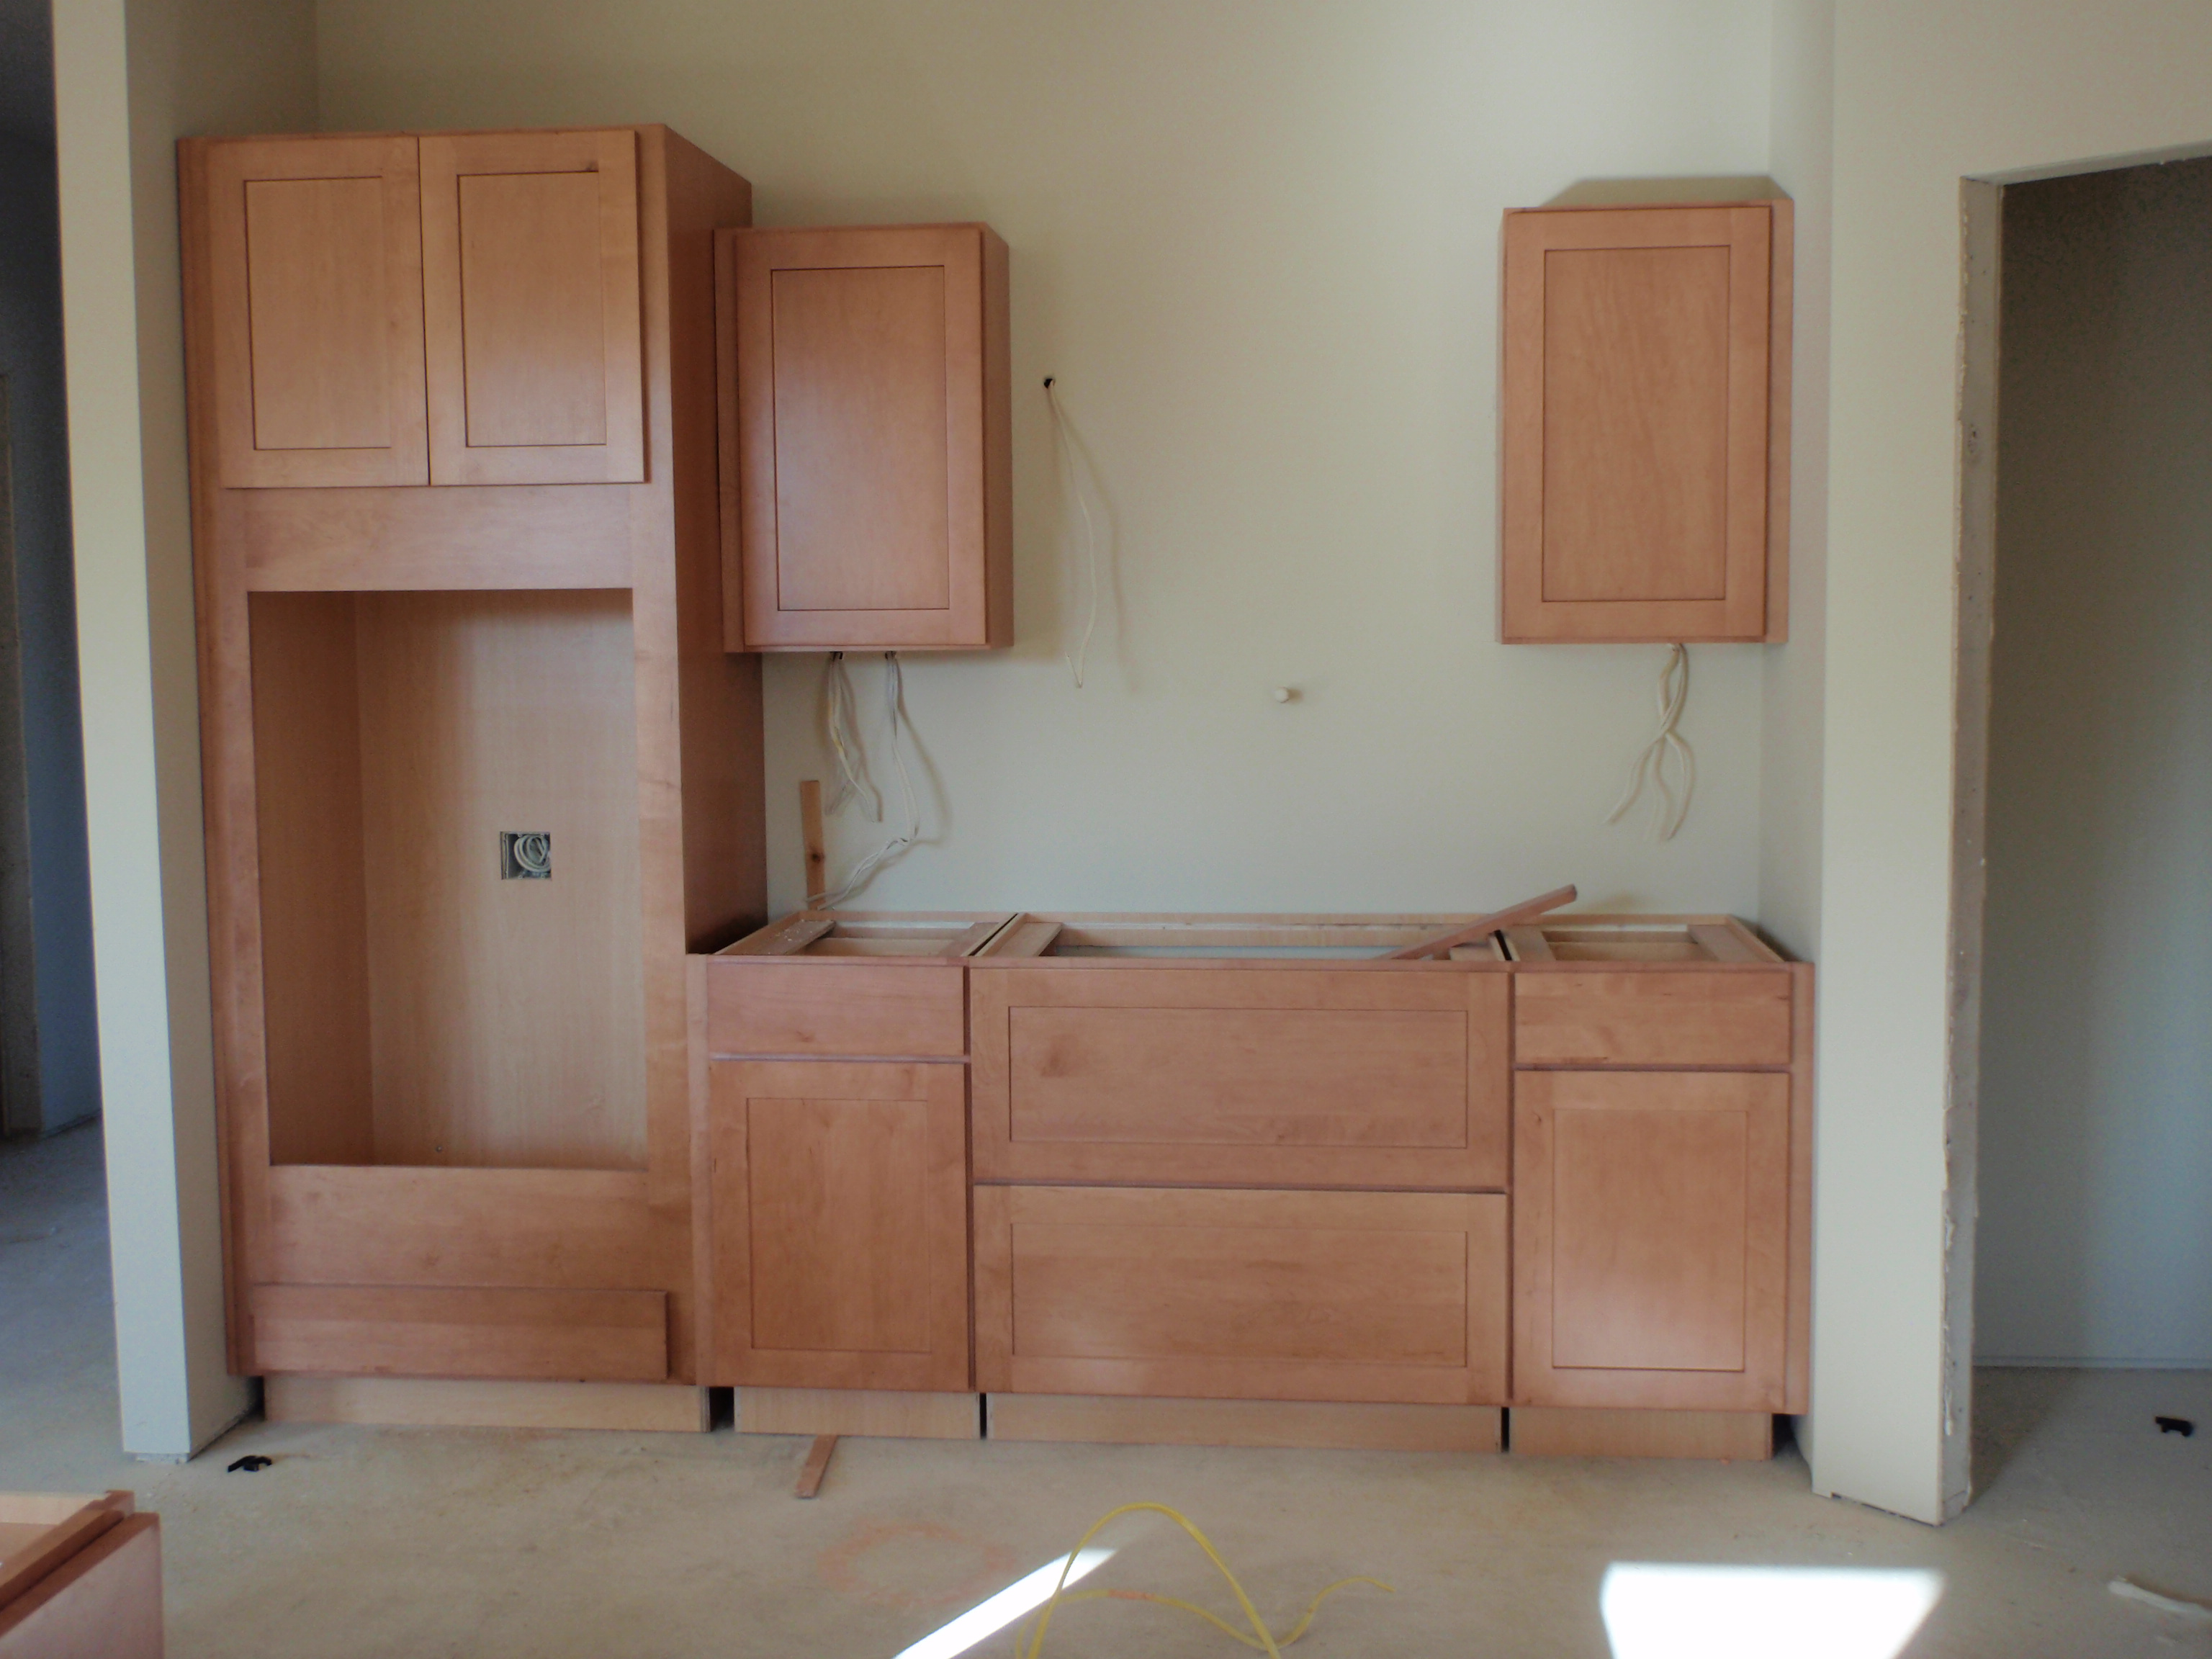 Cliqstudios cabinets in our future kitchen looks nice right well